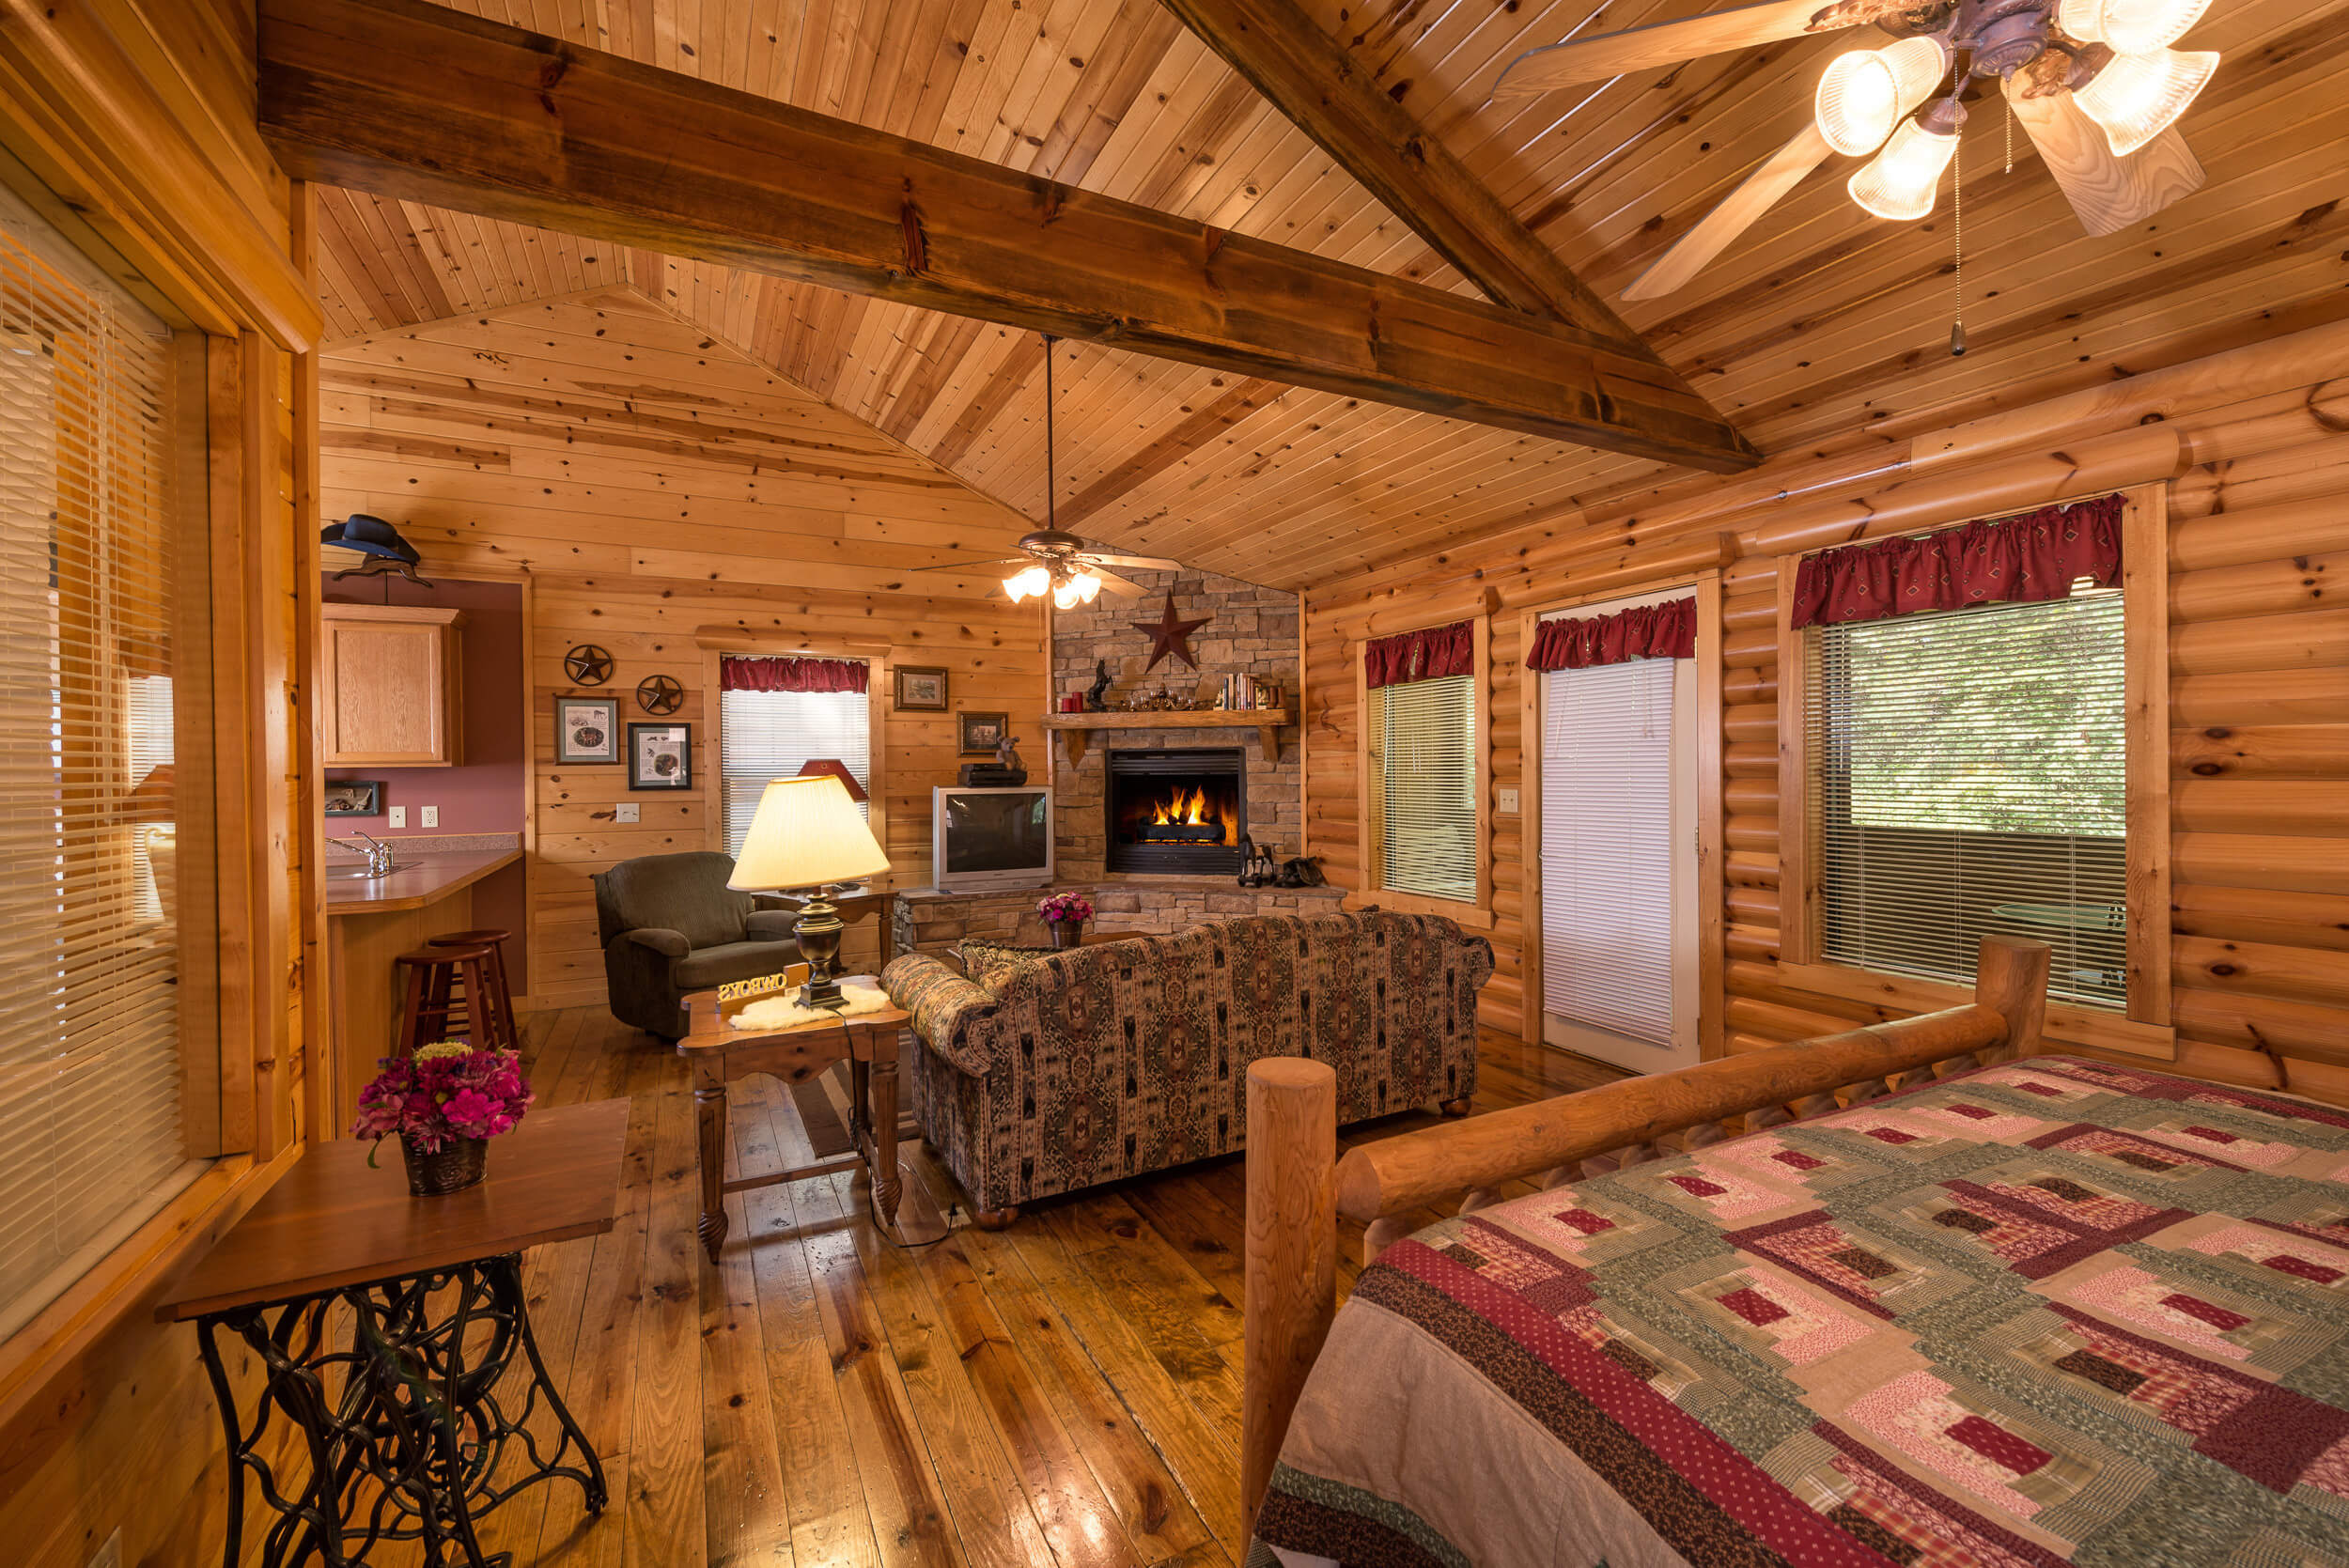 cabin bedroom wood wonderful sets northwoods log jesanet com furniture professional ideal